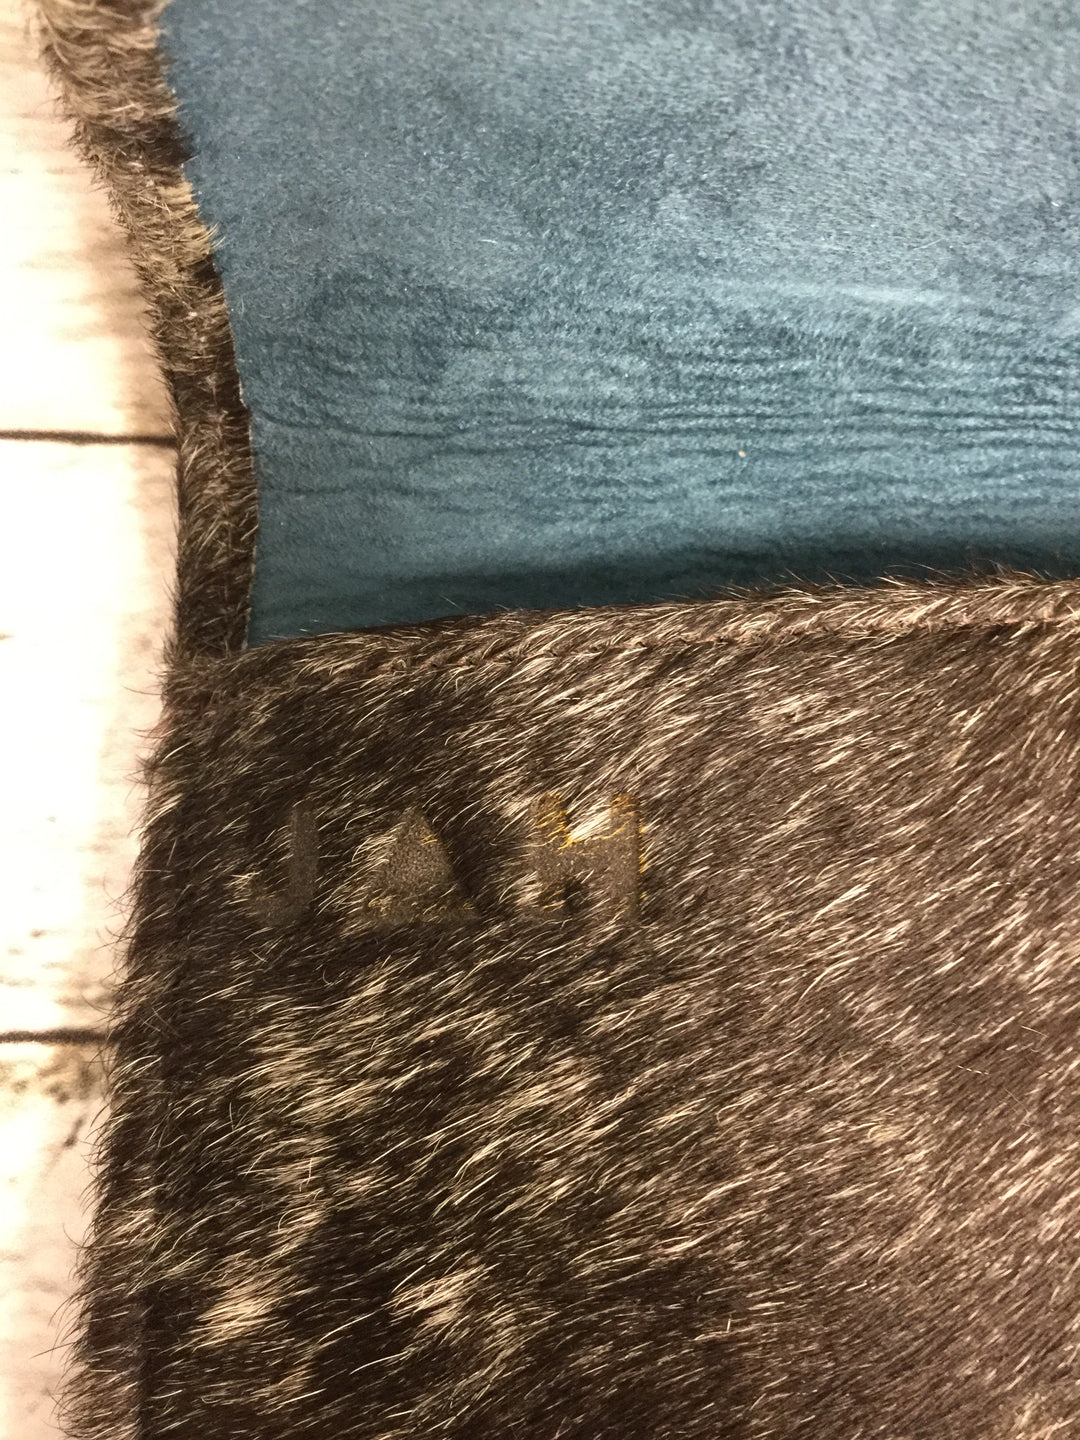 Photo #2 - BRAND:    CMD , STYLE: CLUTCH , COLOR: ANIMAL PRINT , OTHER INFO: JACKSON AND HYDE - , SKU: 127-4942-3369, , THIS CLUTCH IS HAIR-ON COWHIDE EXTERIOR WITH BLUE SUEDE INSIDE. IT CLOSES MAGNETICALLY. IT'S IN GREAT CONDITION AND COMES WITH A SLEEPER BAG!